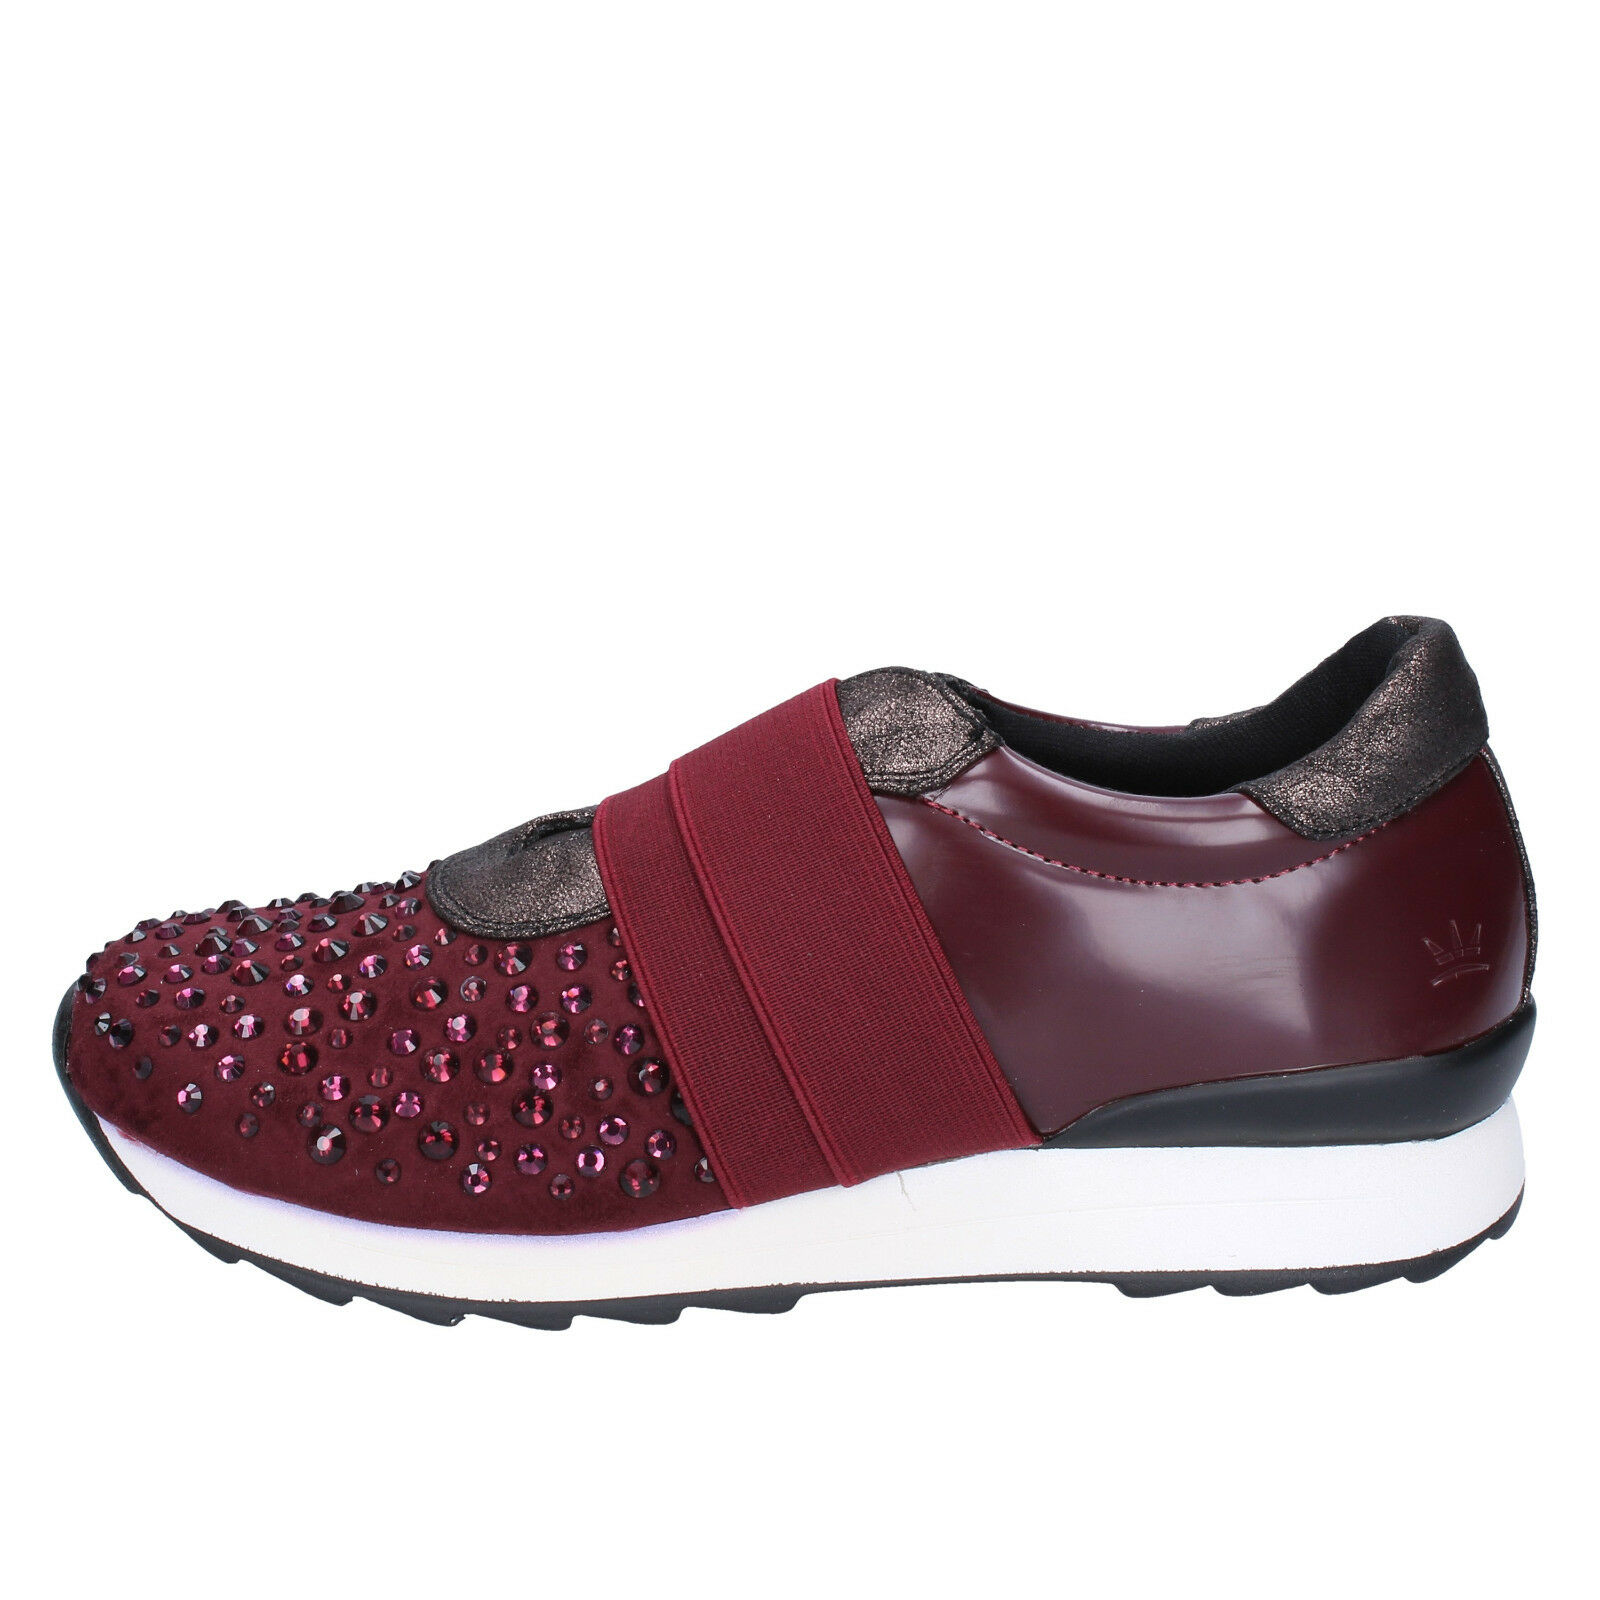 Scarpe on donna FRANCESCO MILANO 40 EU slip on bordeaux scarpe bordeaux on pelle   86008d